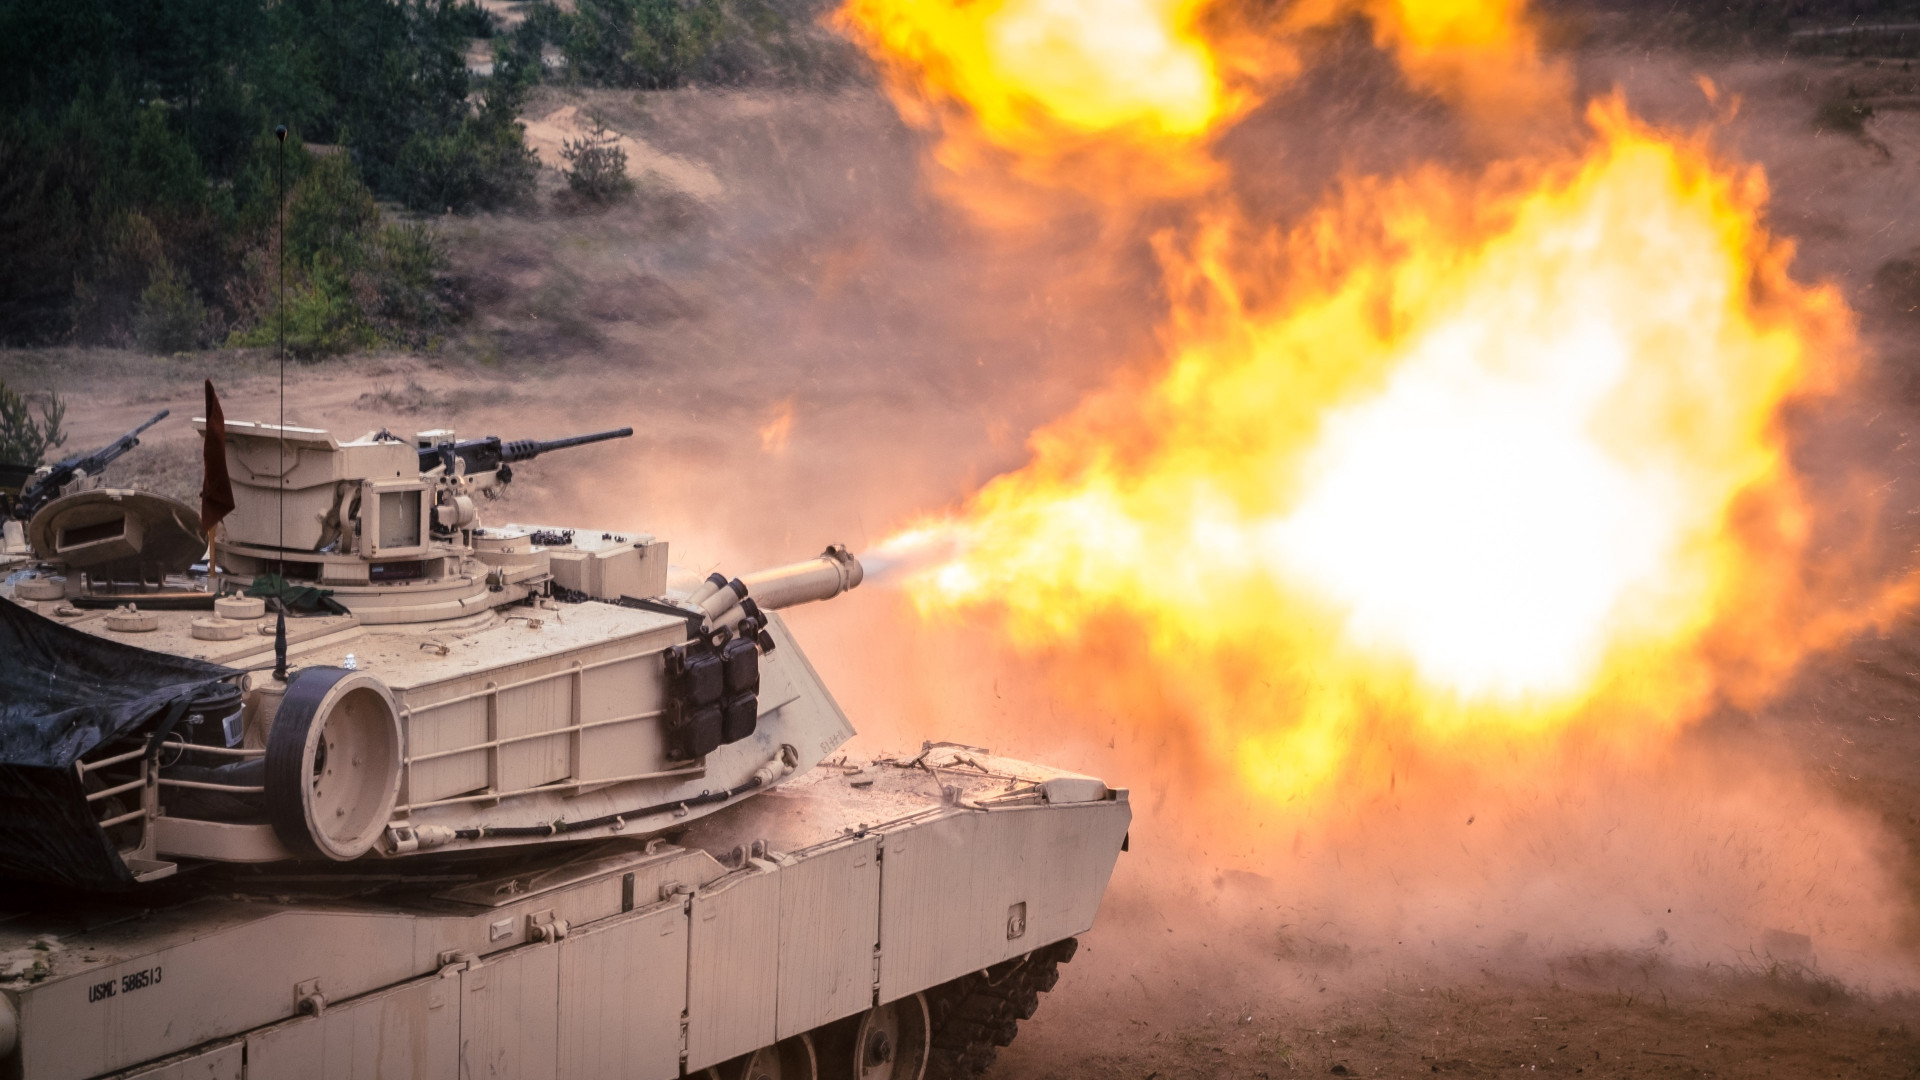 Tank firing exercise wallpaper 1920x1080